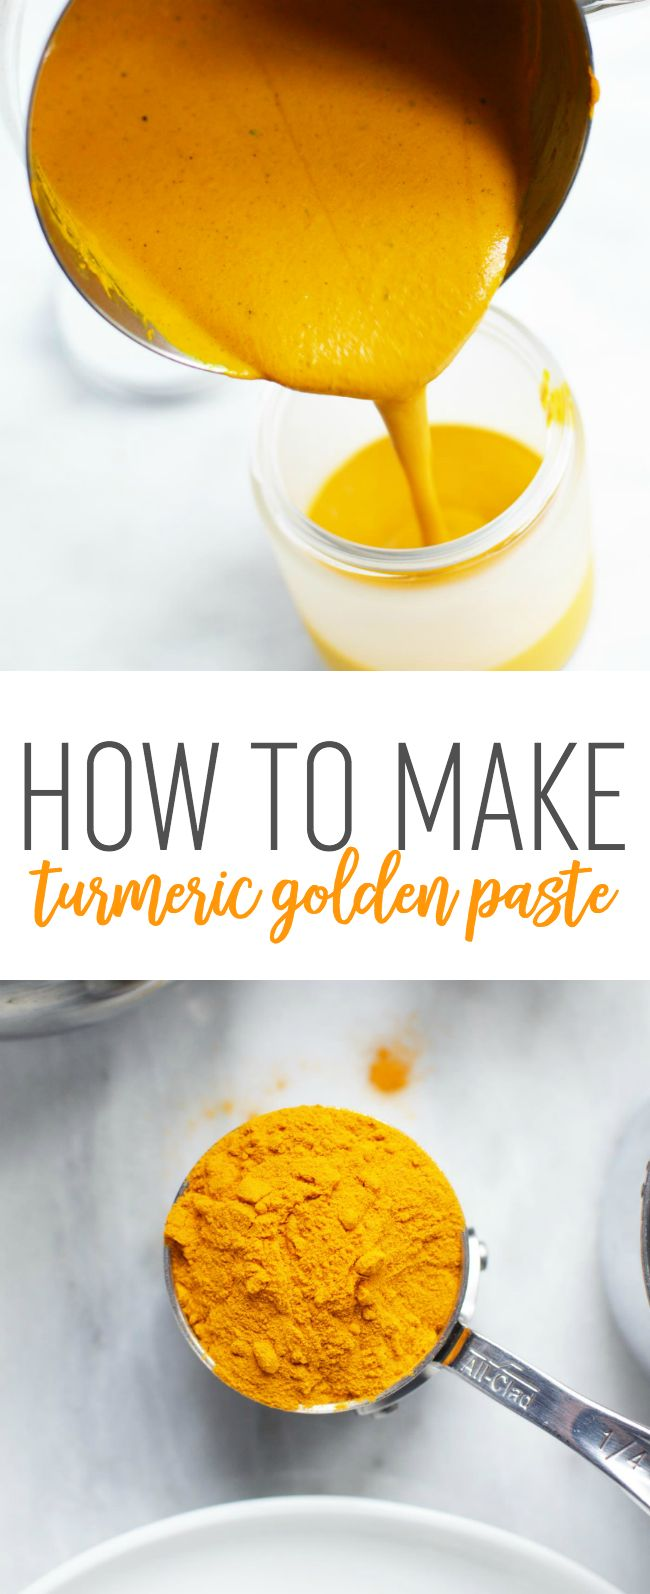 DIY Turmeric Golden Paste Recipe - How to make golden paste (used in golden milk) - you won't believe the healthy uses for this product!